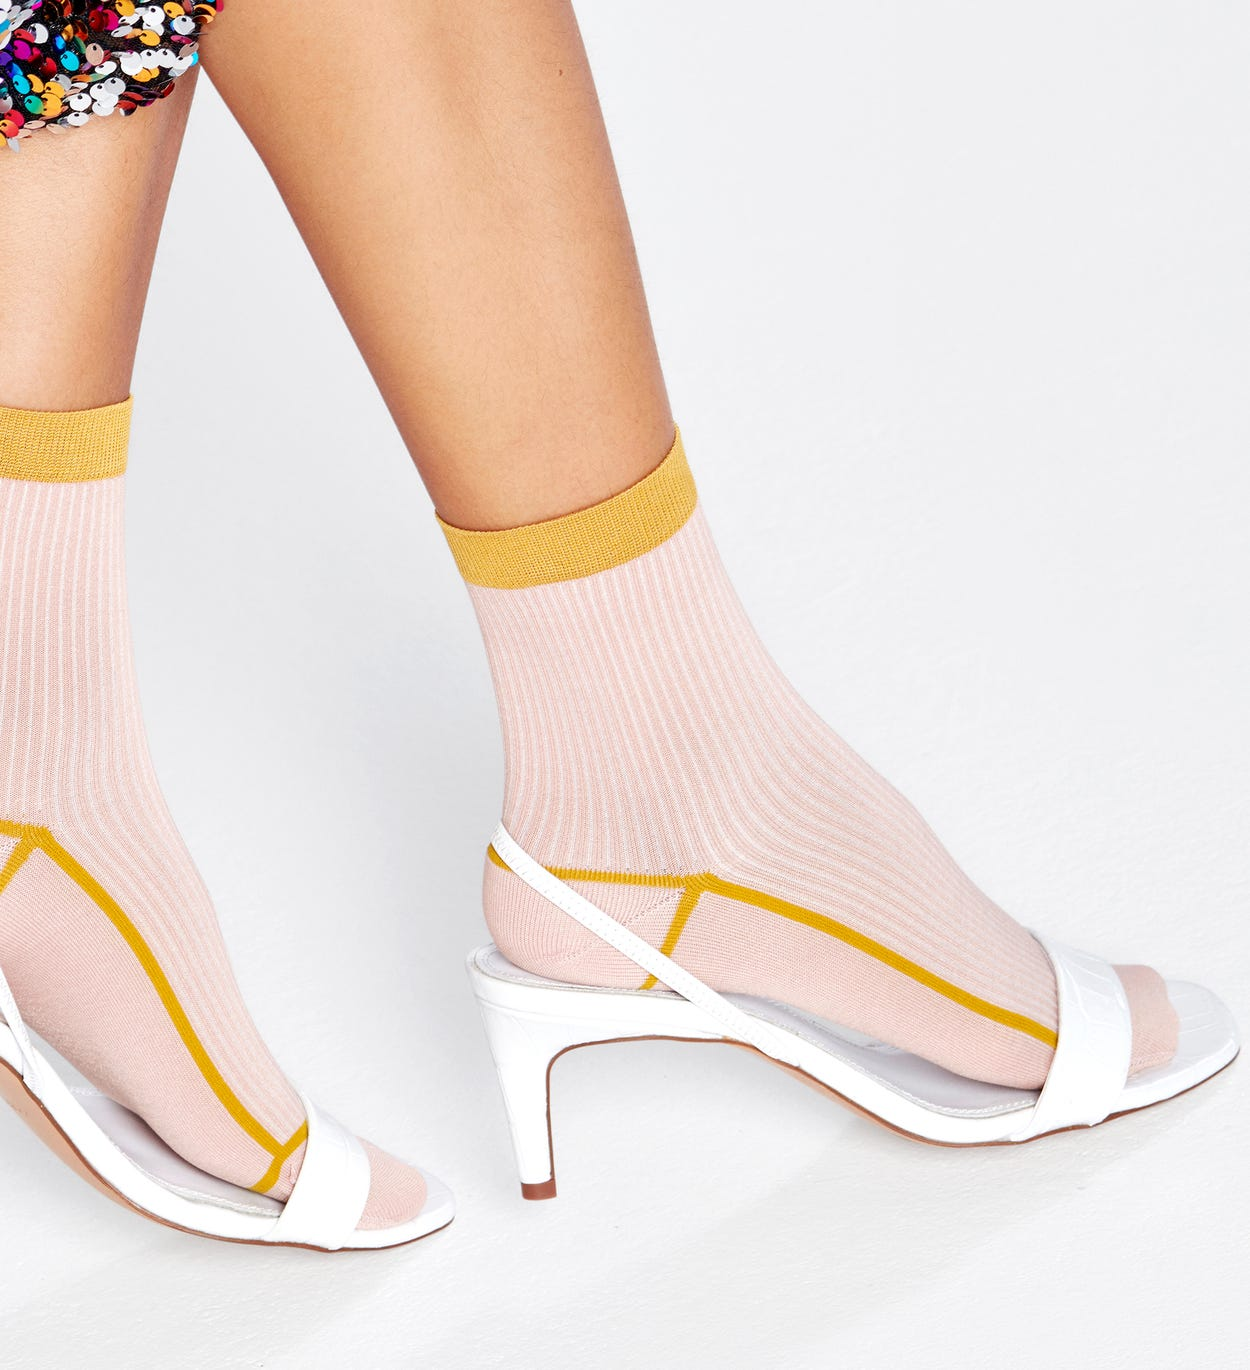 Lily Ankle Sock